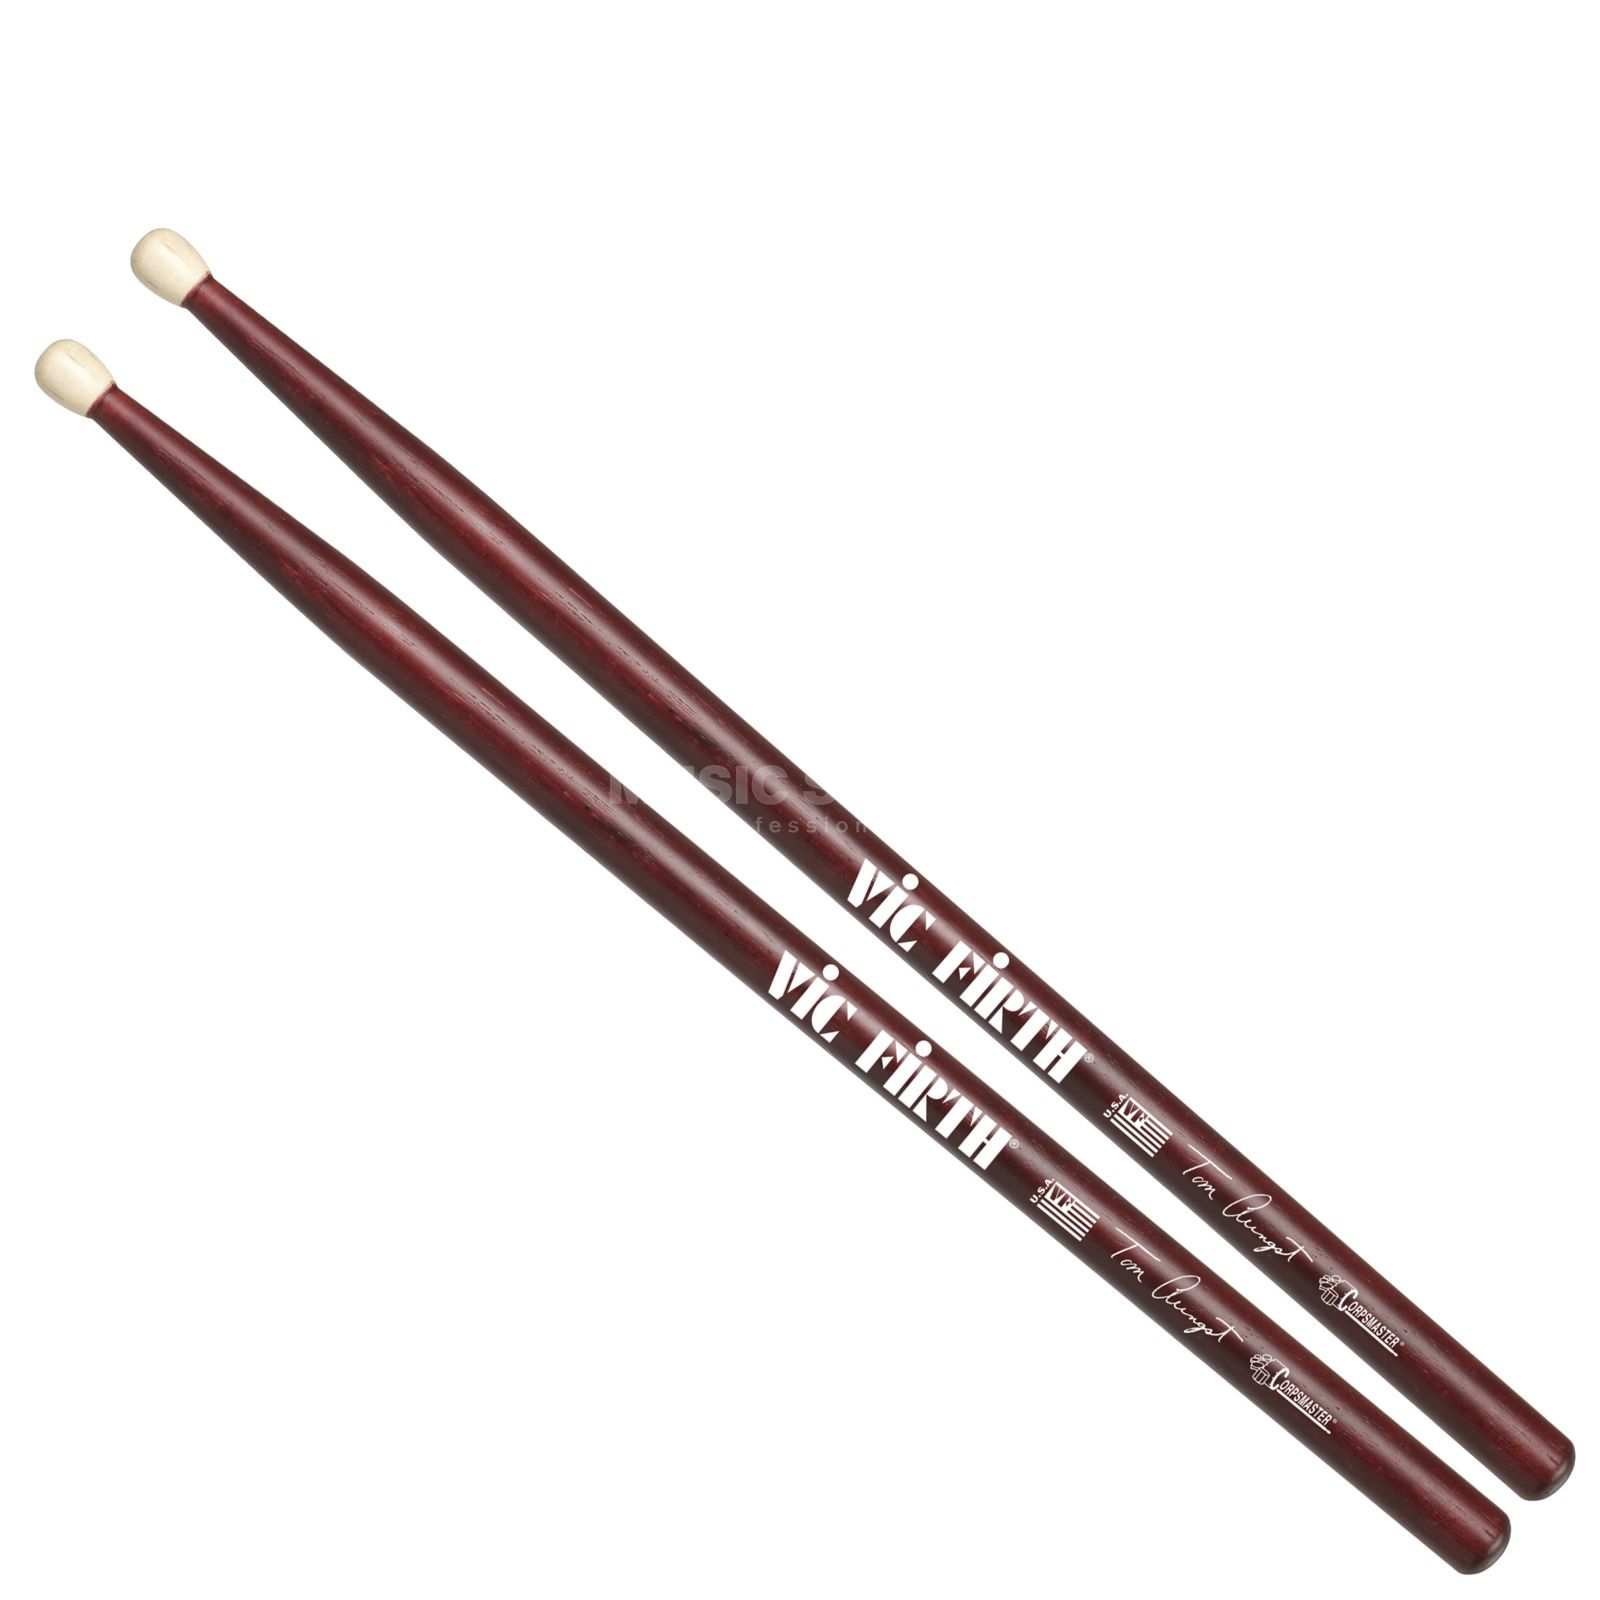 Vic-Firth Marching Sticks STA, Tom Aungst Produktbild